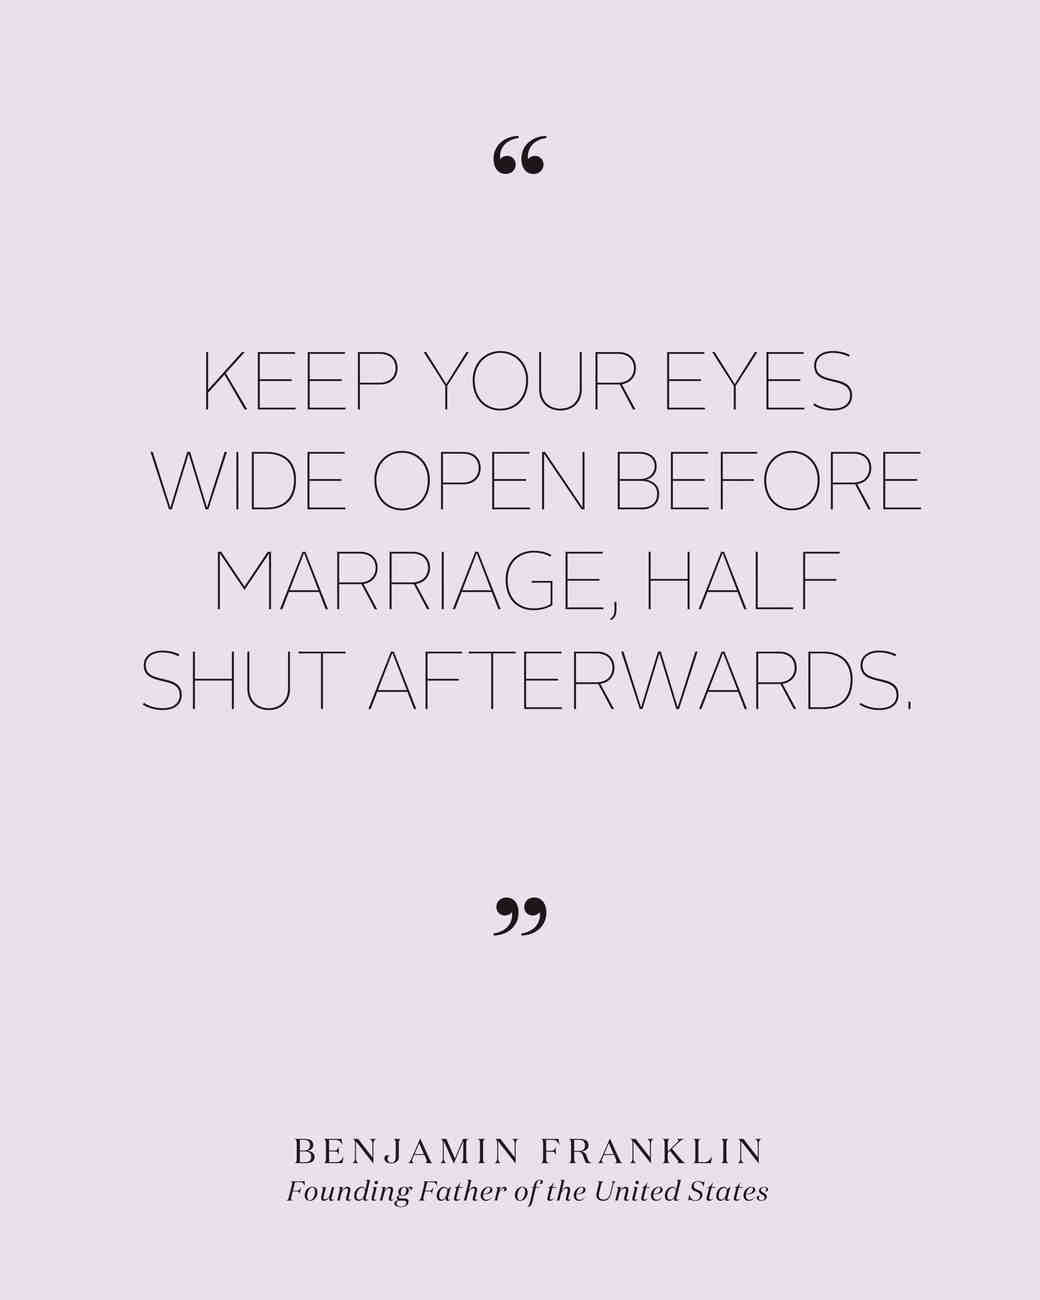 Quotes For Bridal Shower Meme Image 08 | QuotesBae